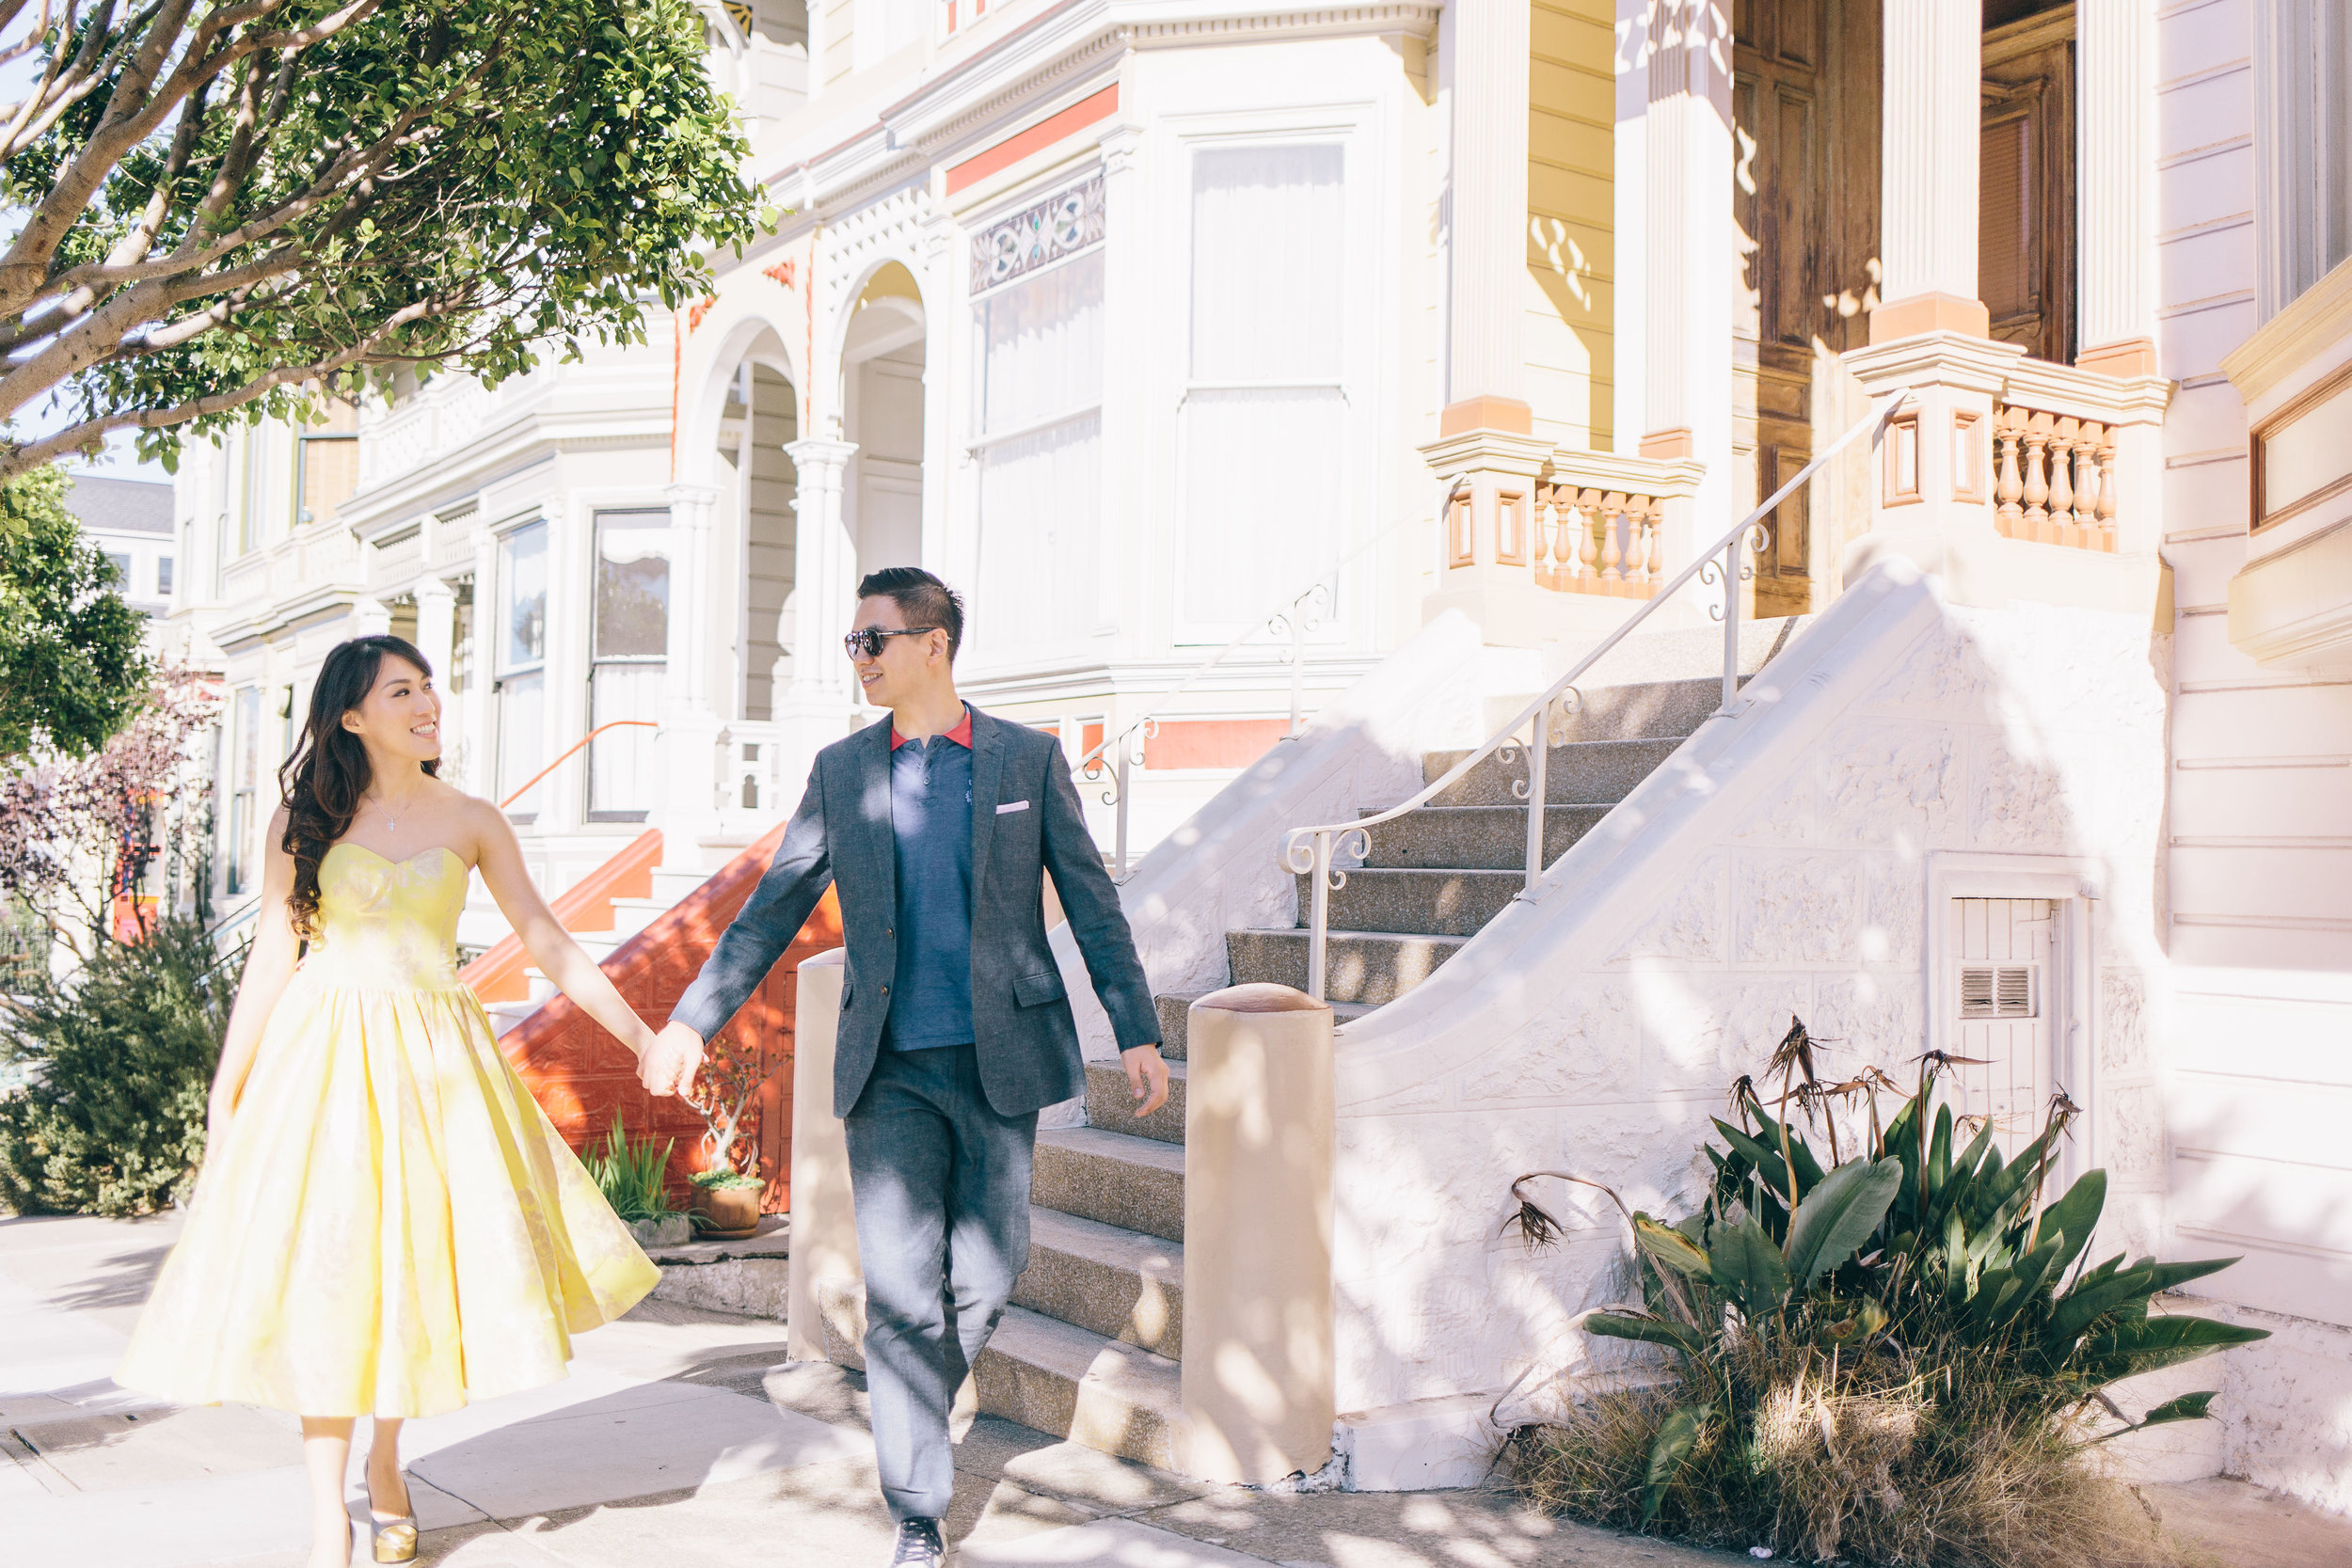 Pre-Wedding Photos in San Francisco by JBJ Pictures Pre-Wedding Photographer, Engagement Session and Wedding Photography in Napa, Sonoma, SF Bay Area (15).jpg